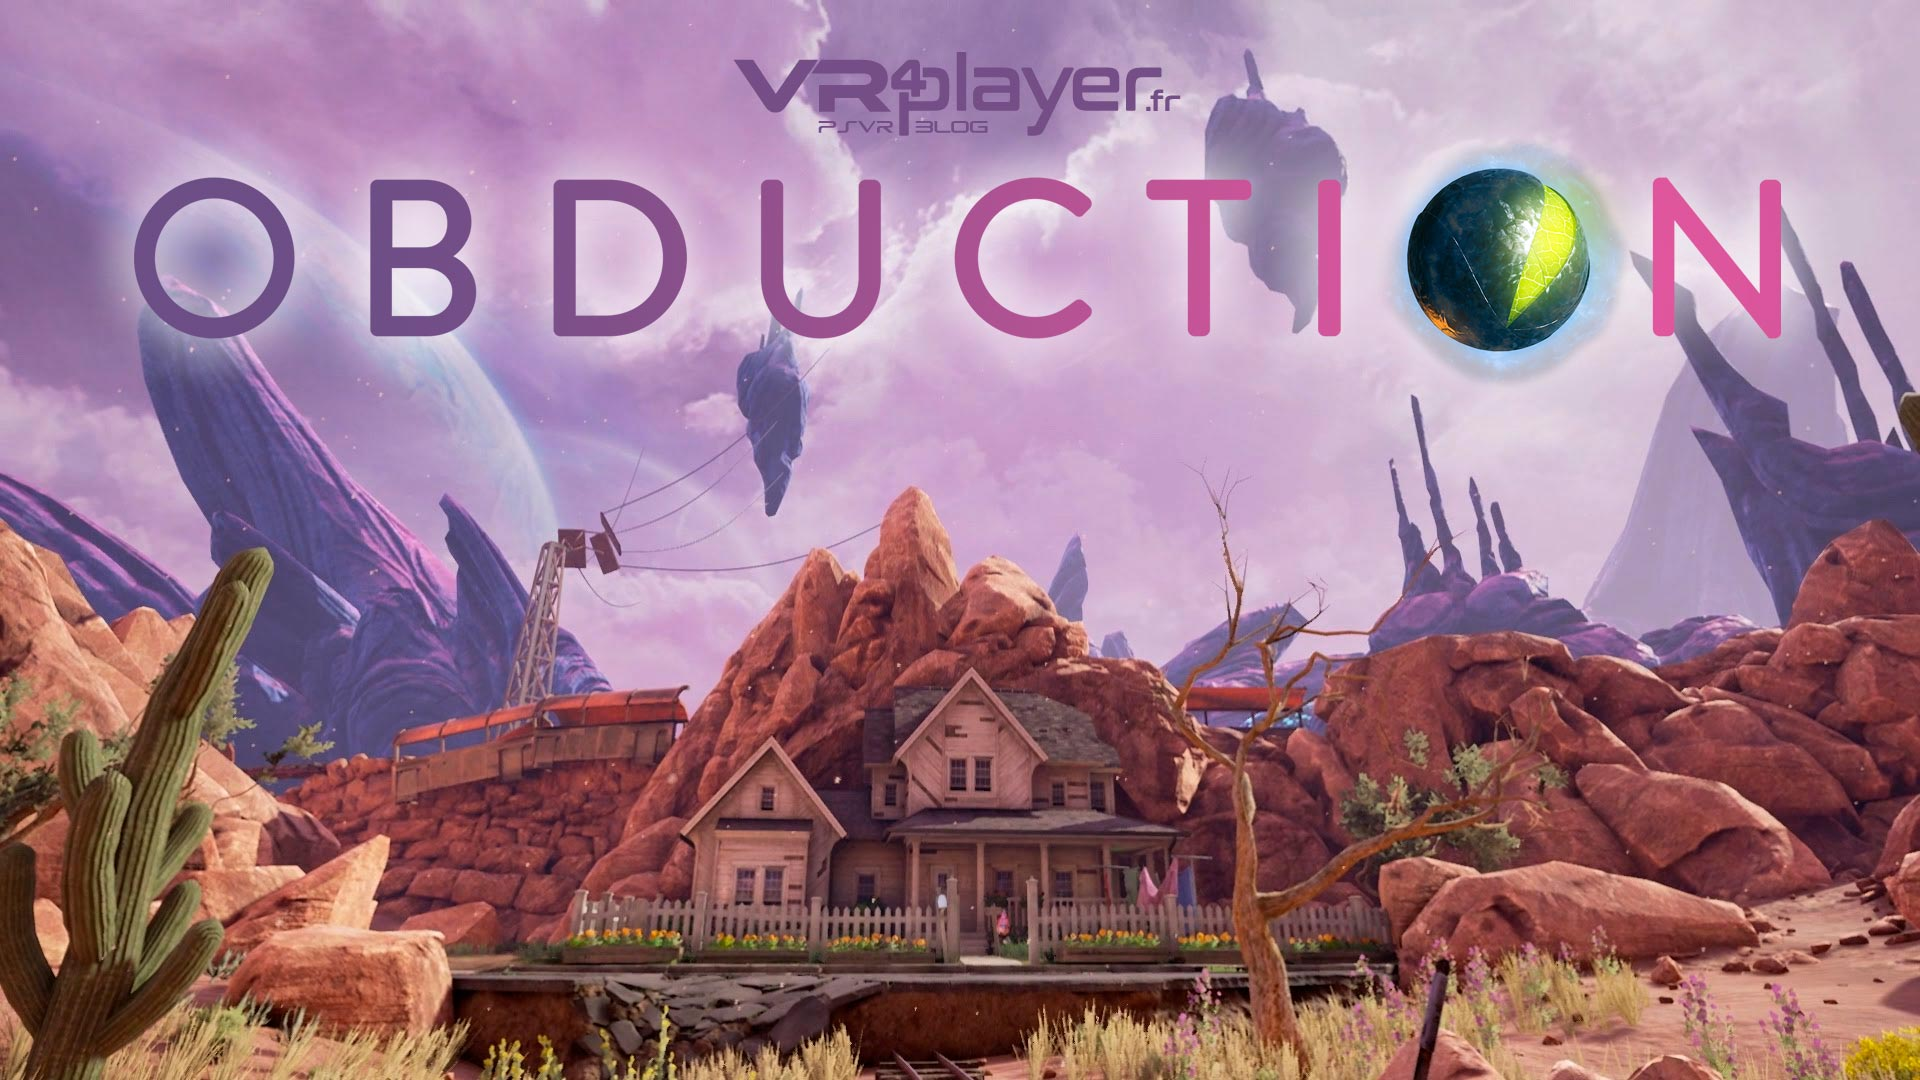 Obduction sur PlayStation VR VR4player.fr